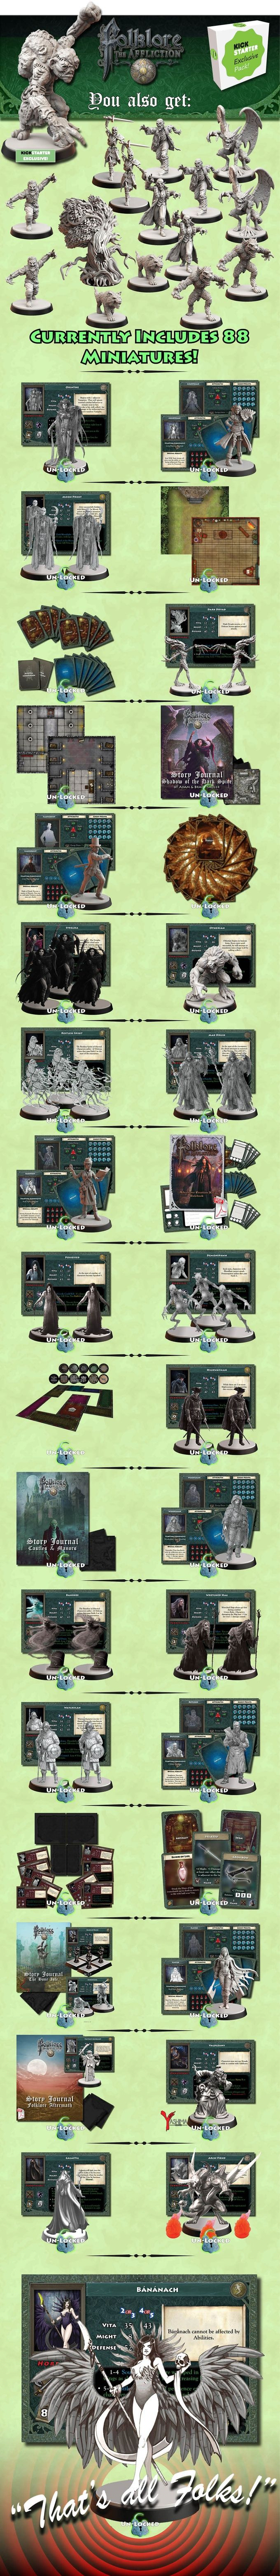 Folklore: The Affliction by Greenbrier Games INC — Kickstarter